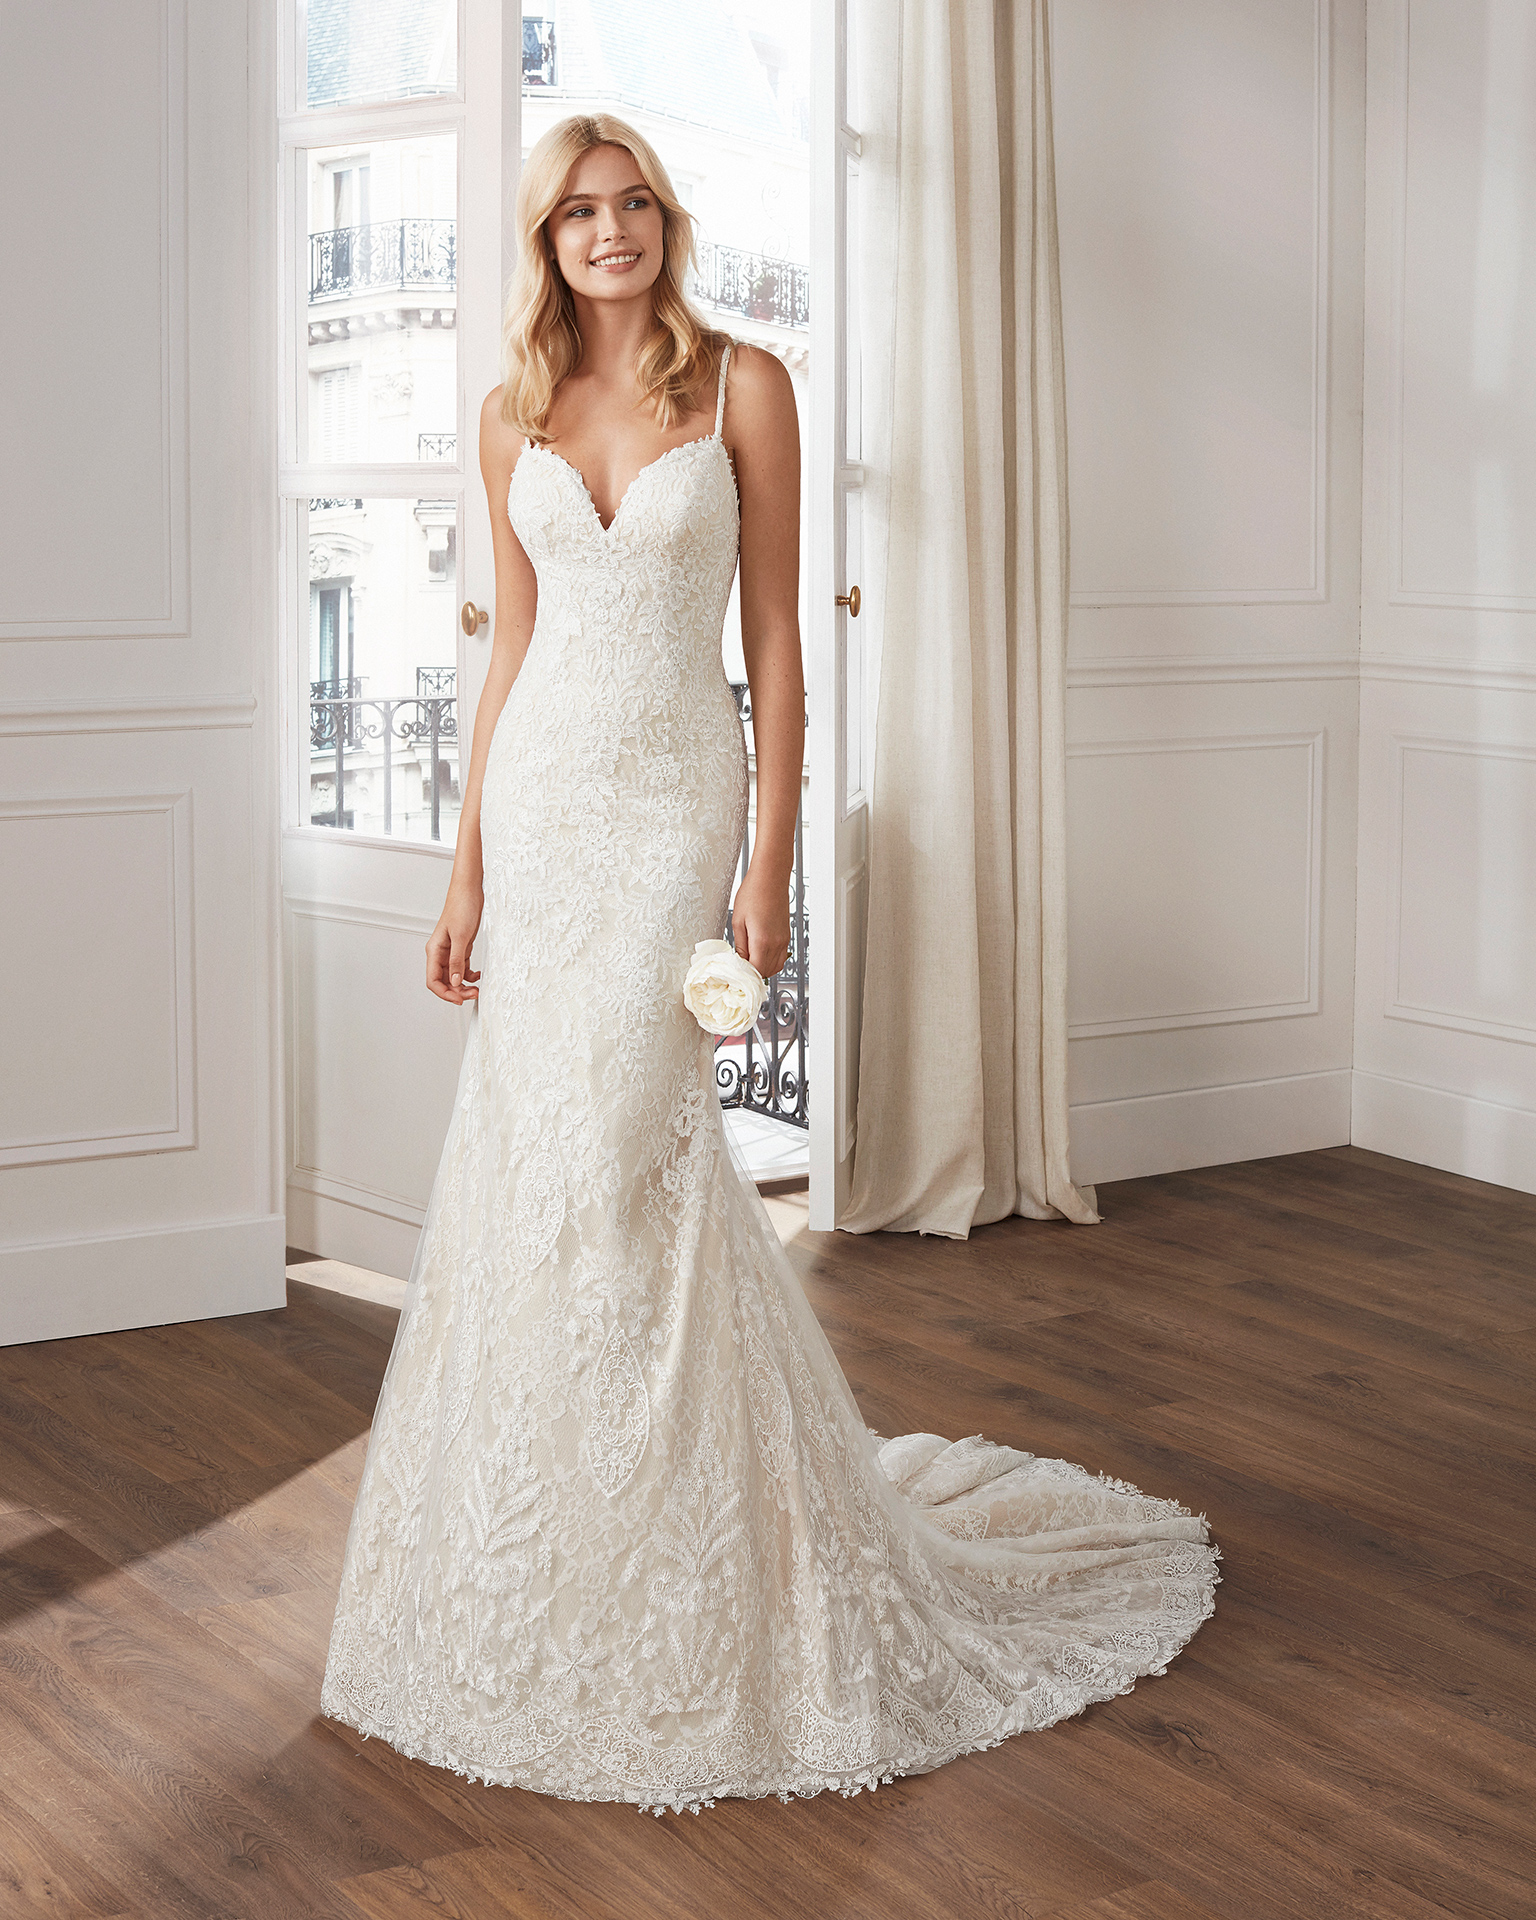 Mermaid-style lace wedding dress. V-neckline and appliquéd skirt, with beaded straps. Available in natural and          natural/champagne. 2019  Collection.